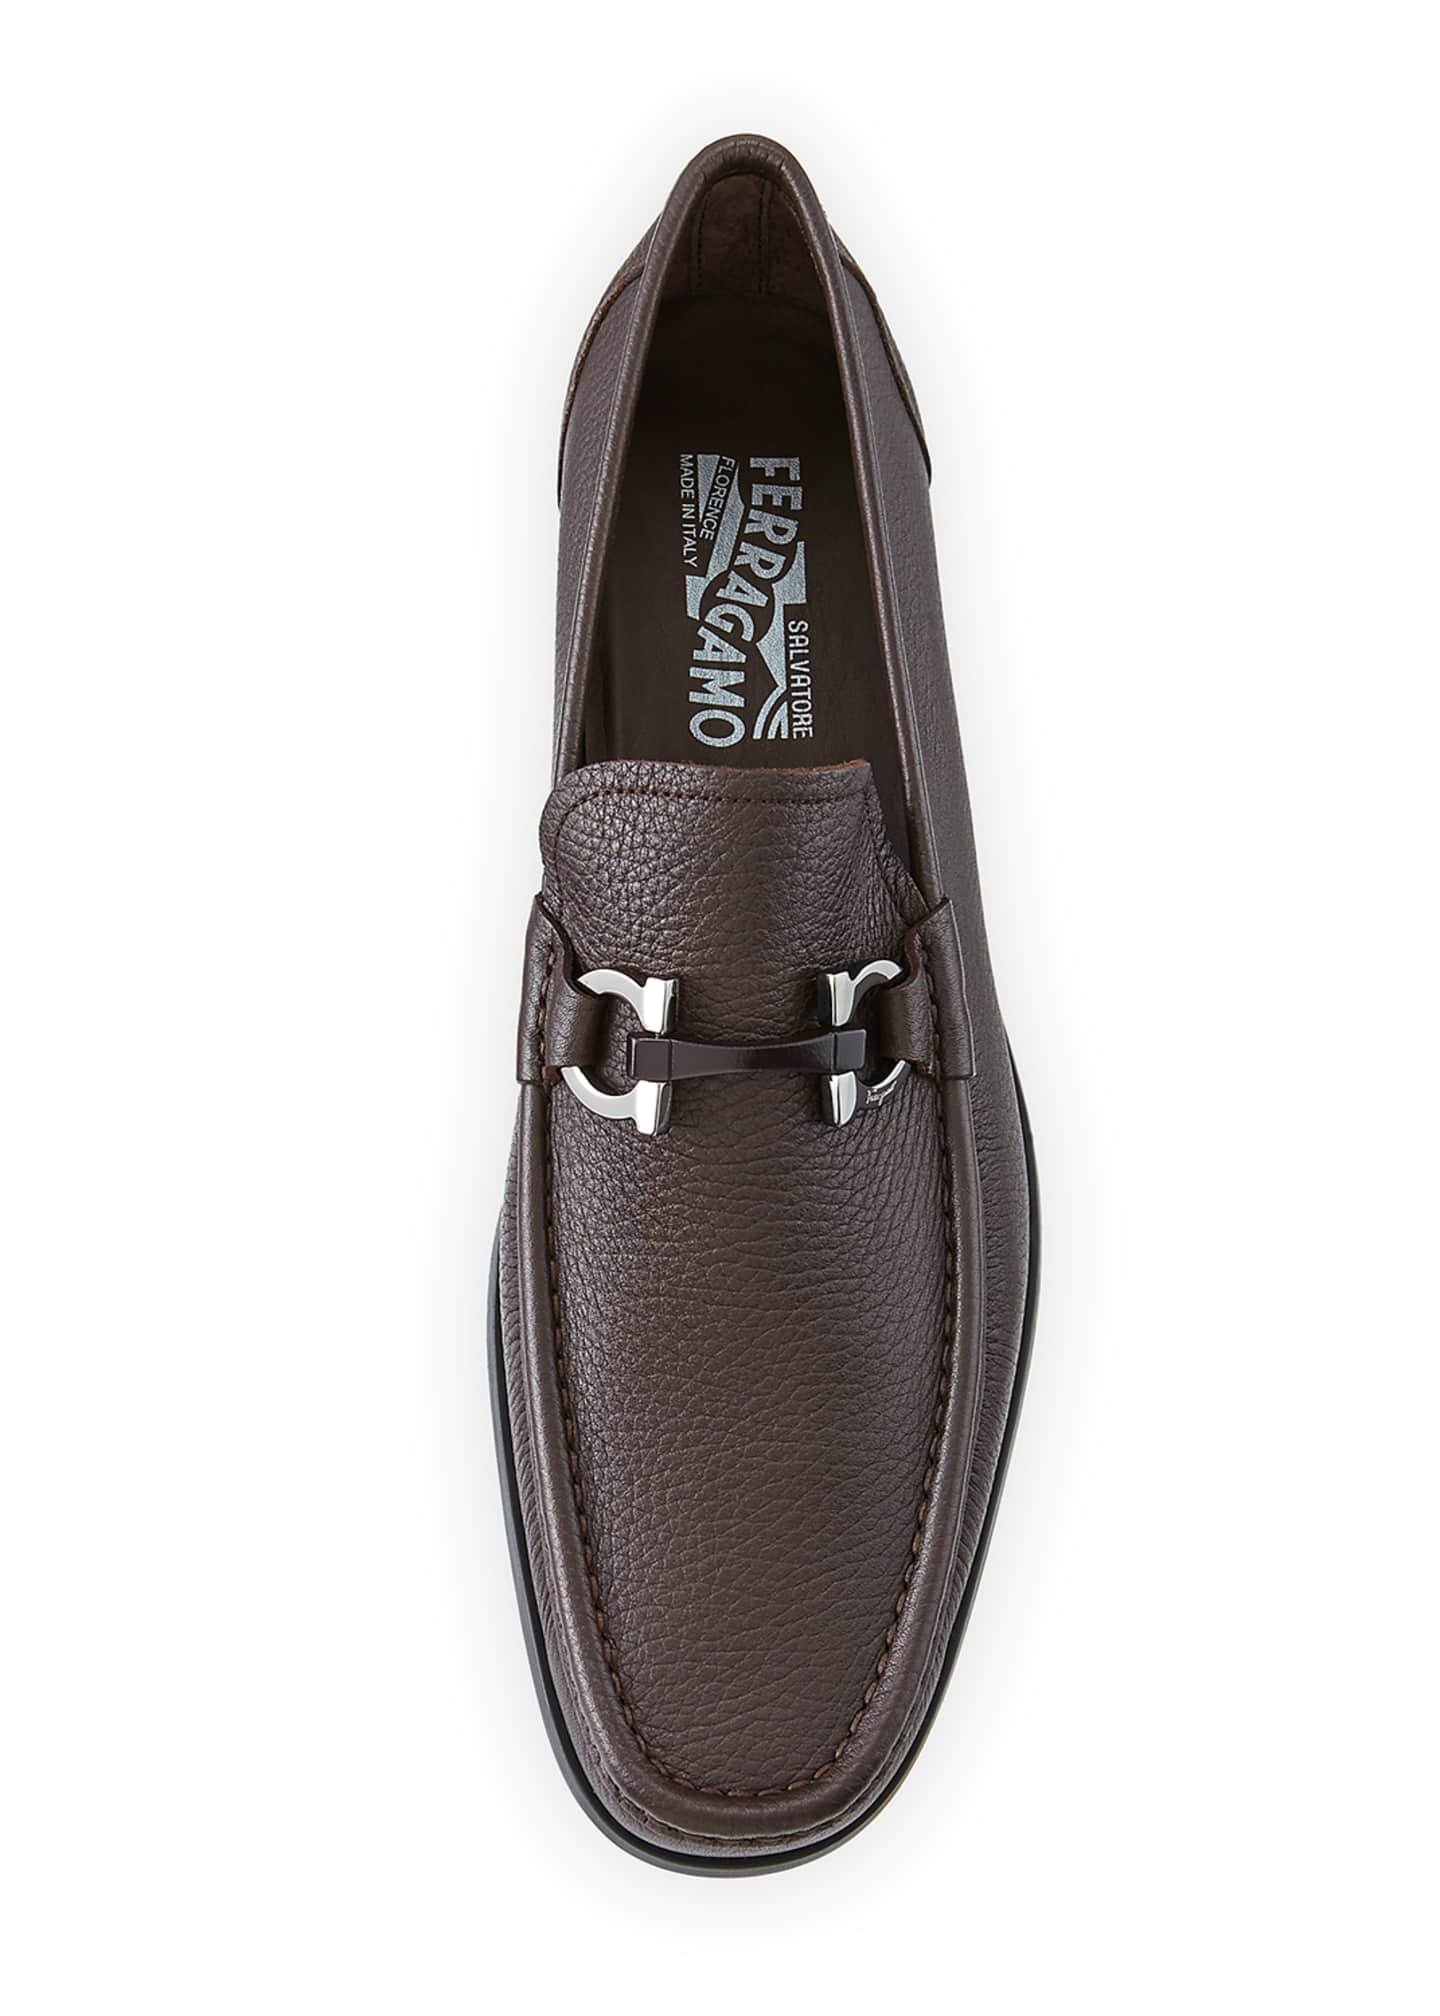 Image 5 of 5: Men's Textured Calfskin Gancini Loafer